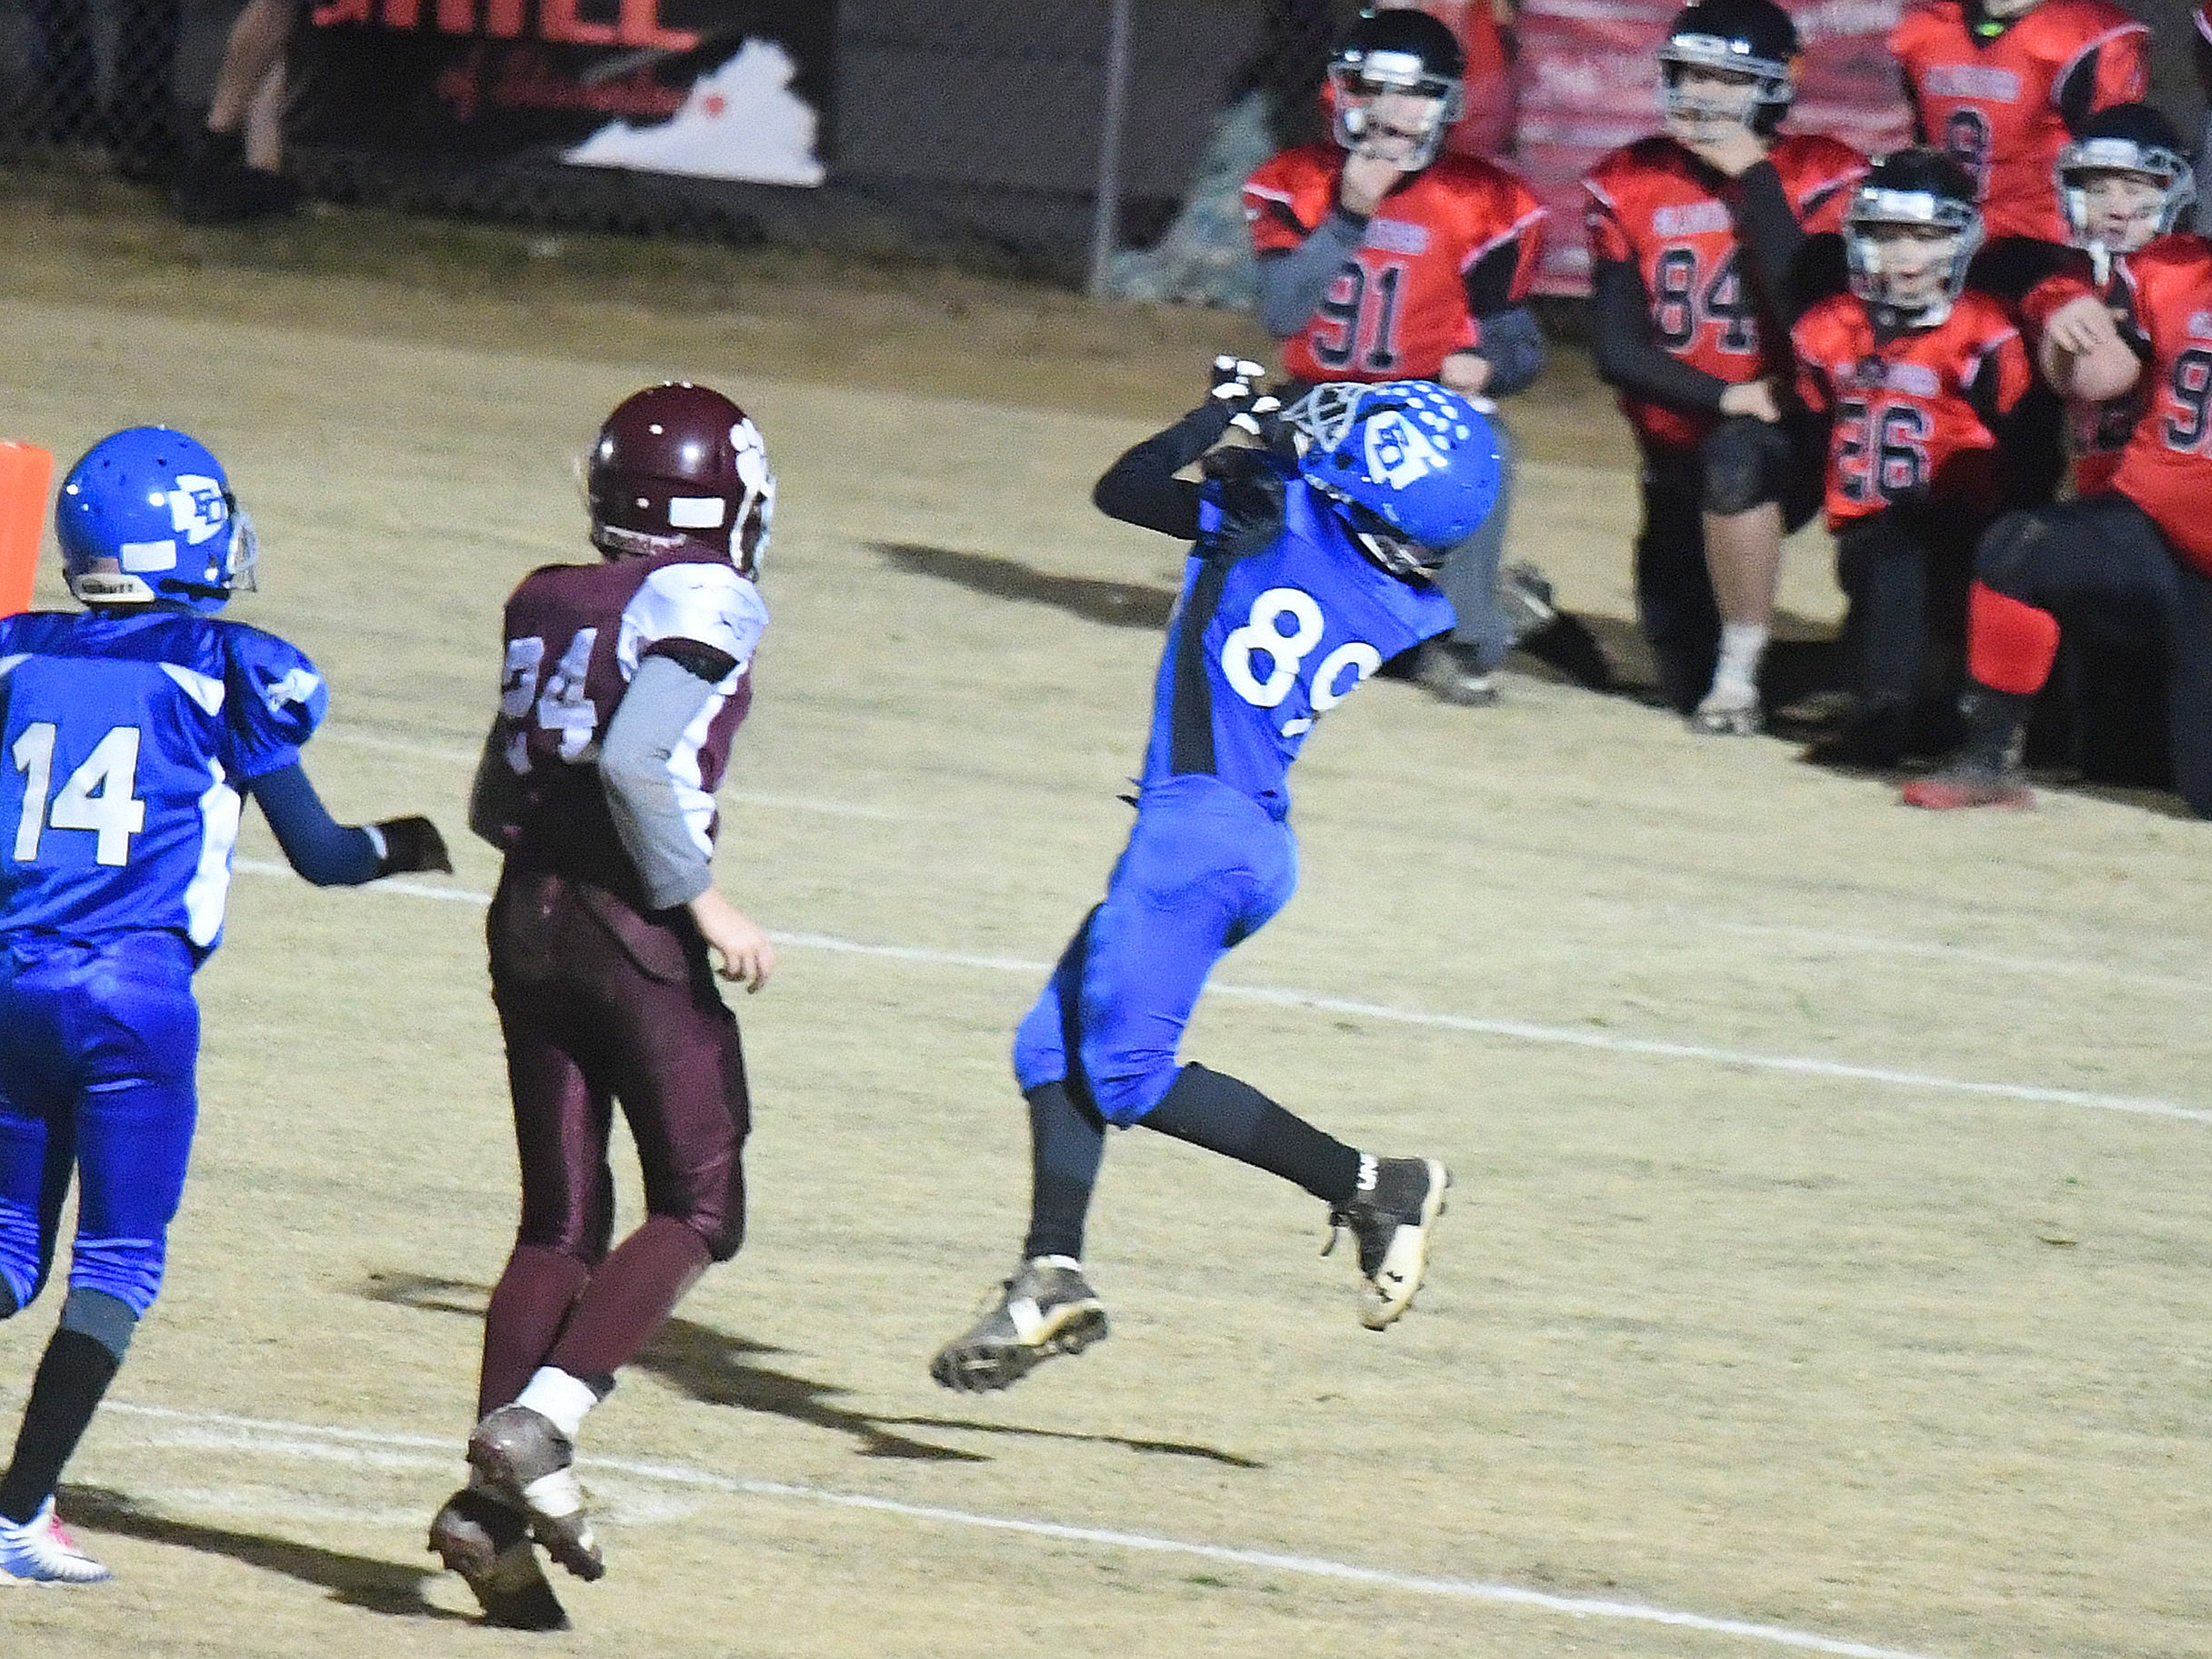 Fort Defiance's Elijah Pultz catches the ball in the end zone for the extra point during the Augusta County Quarterback Club Juniors Super Bowl in Fishersville on Sunday, Nov. 11, 2018.  Fort Defiance beats Stuarts Draft, 13-12.